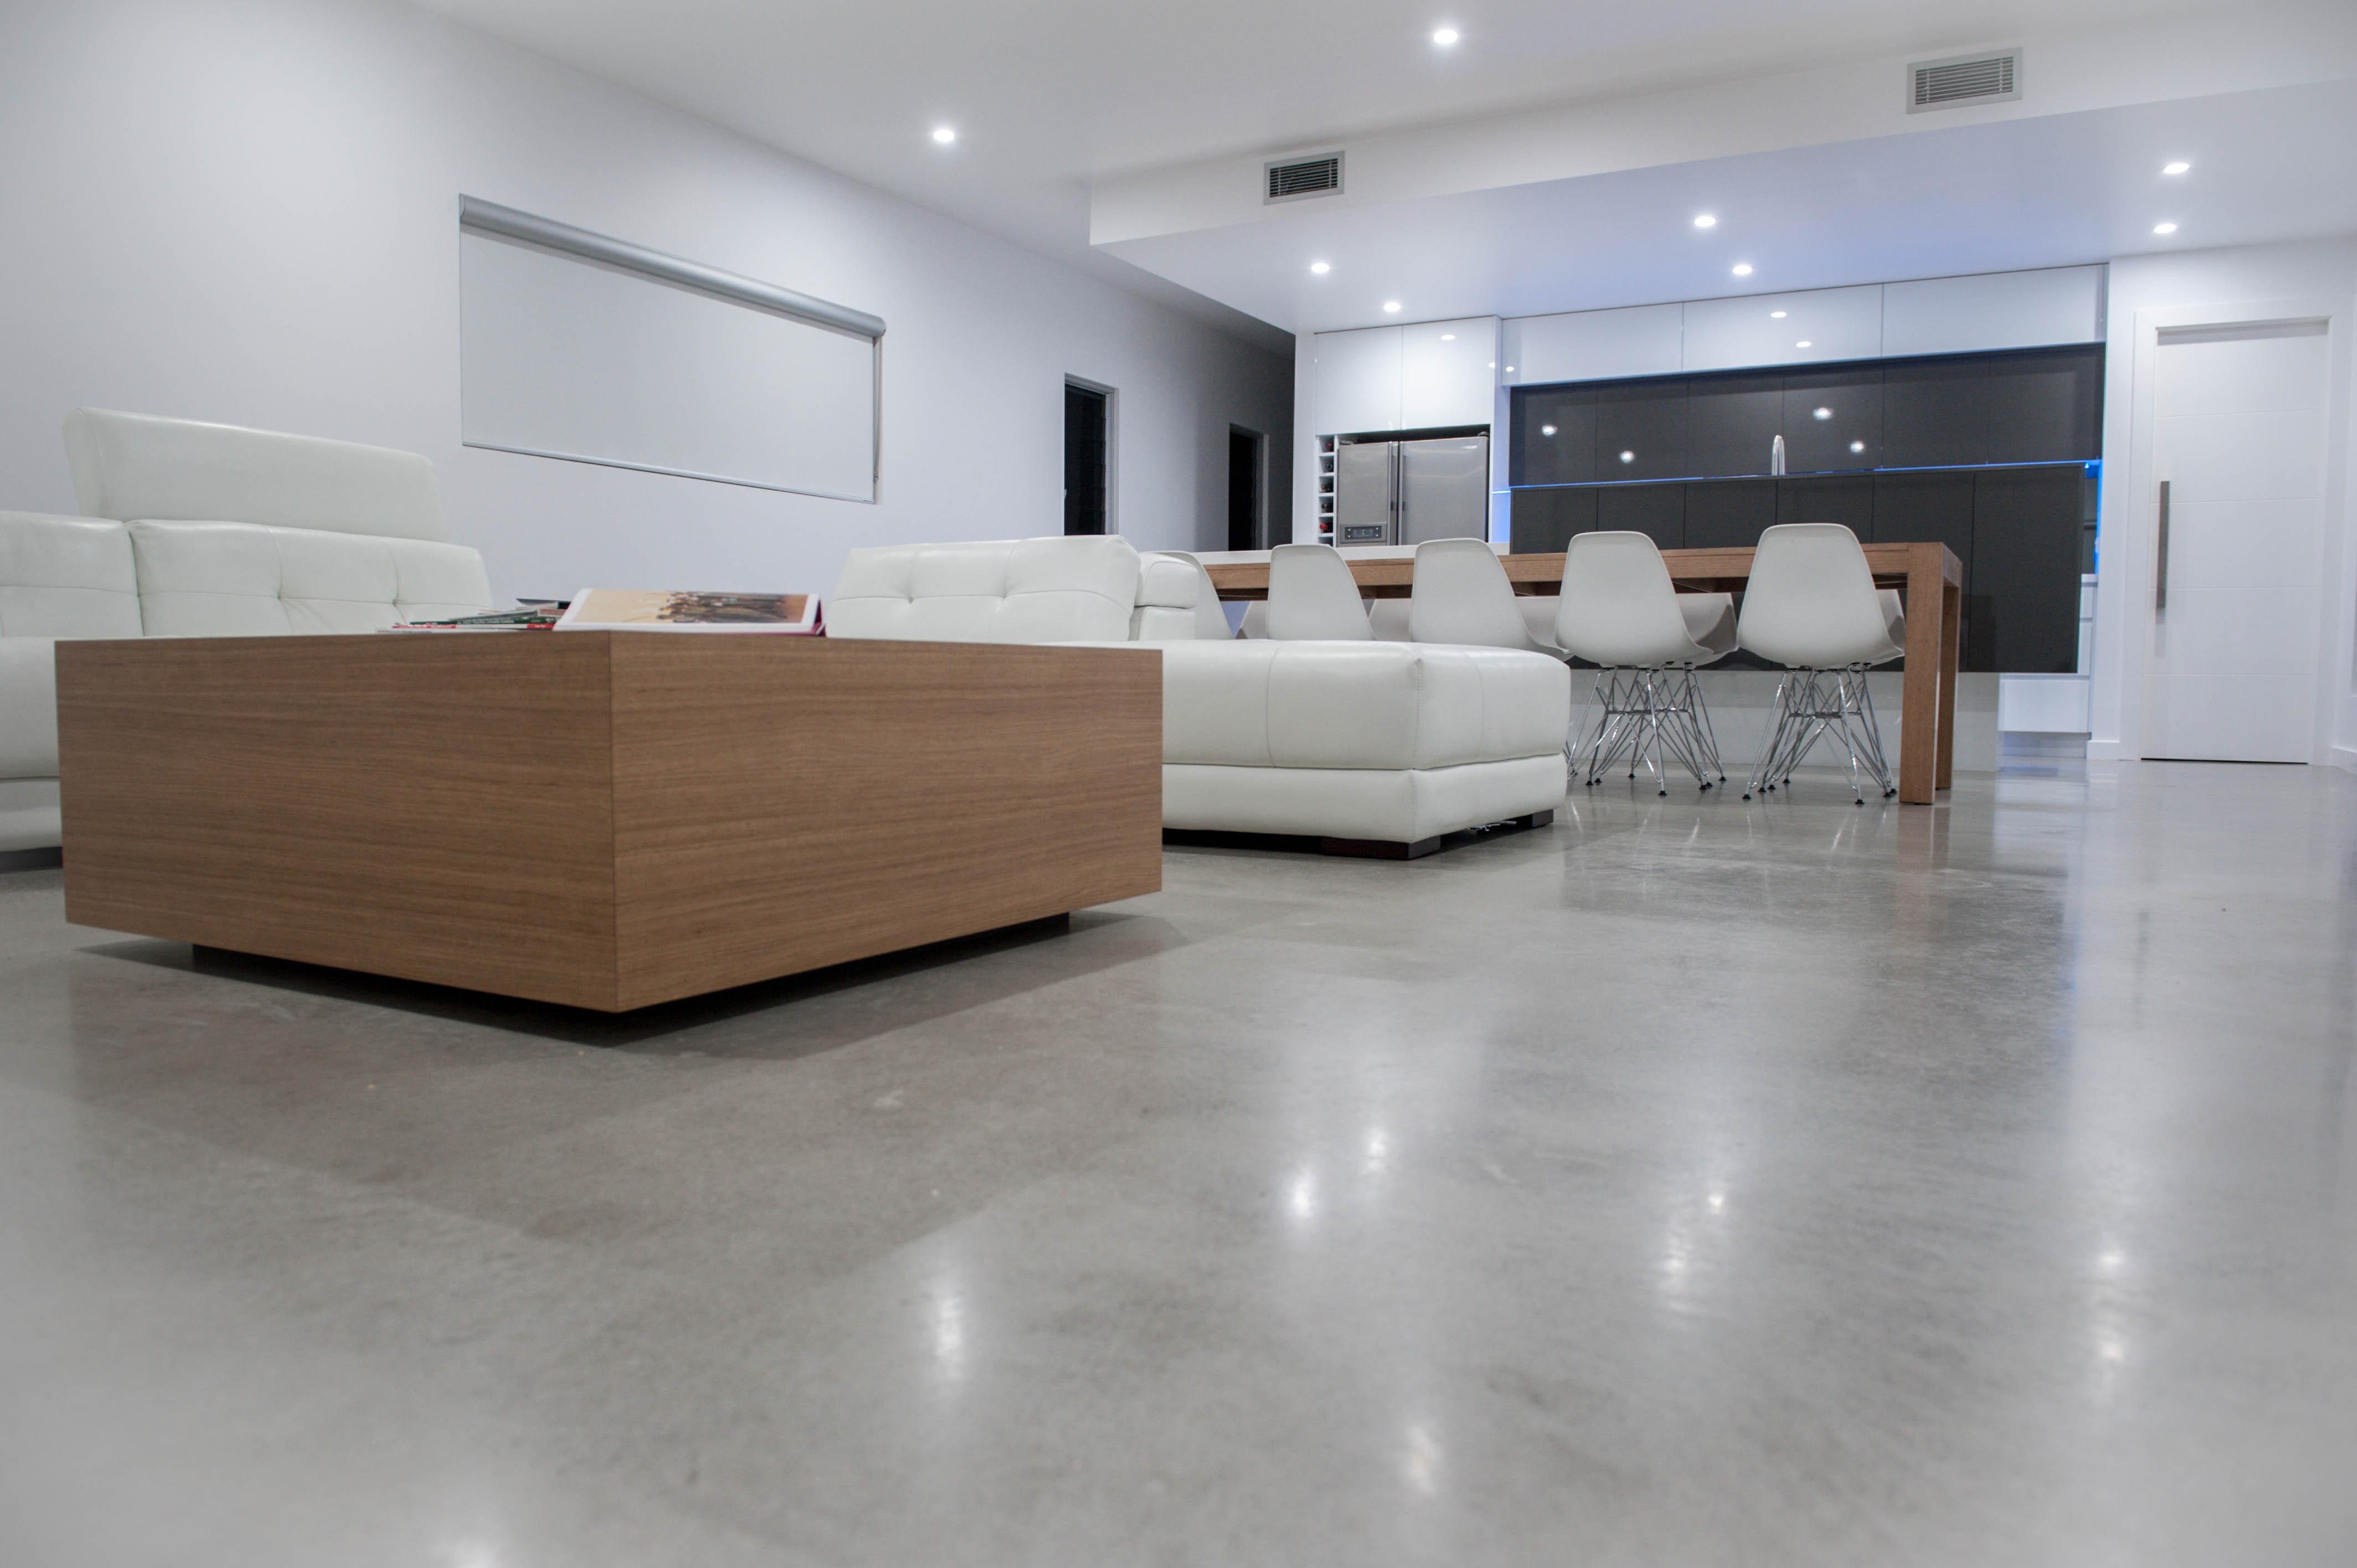 floor do for james ltd stuff it acid washed yourself amazing jade finishes concrete pin